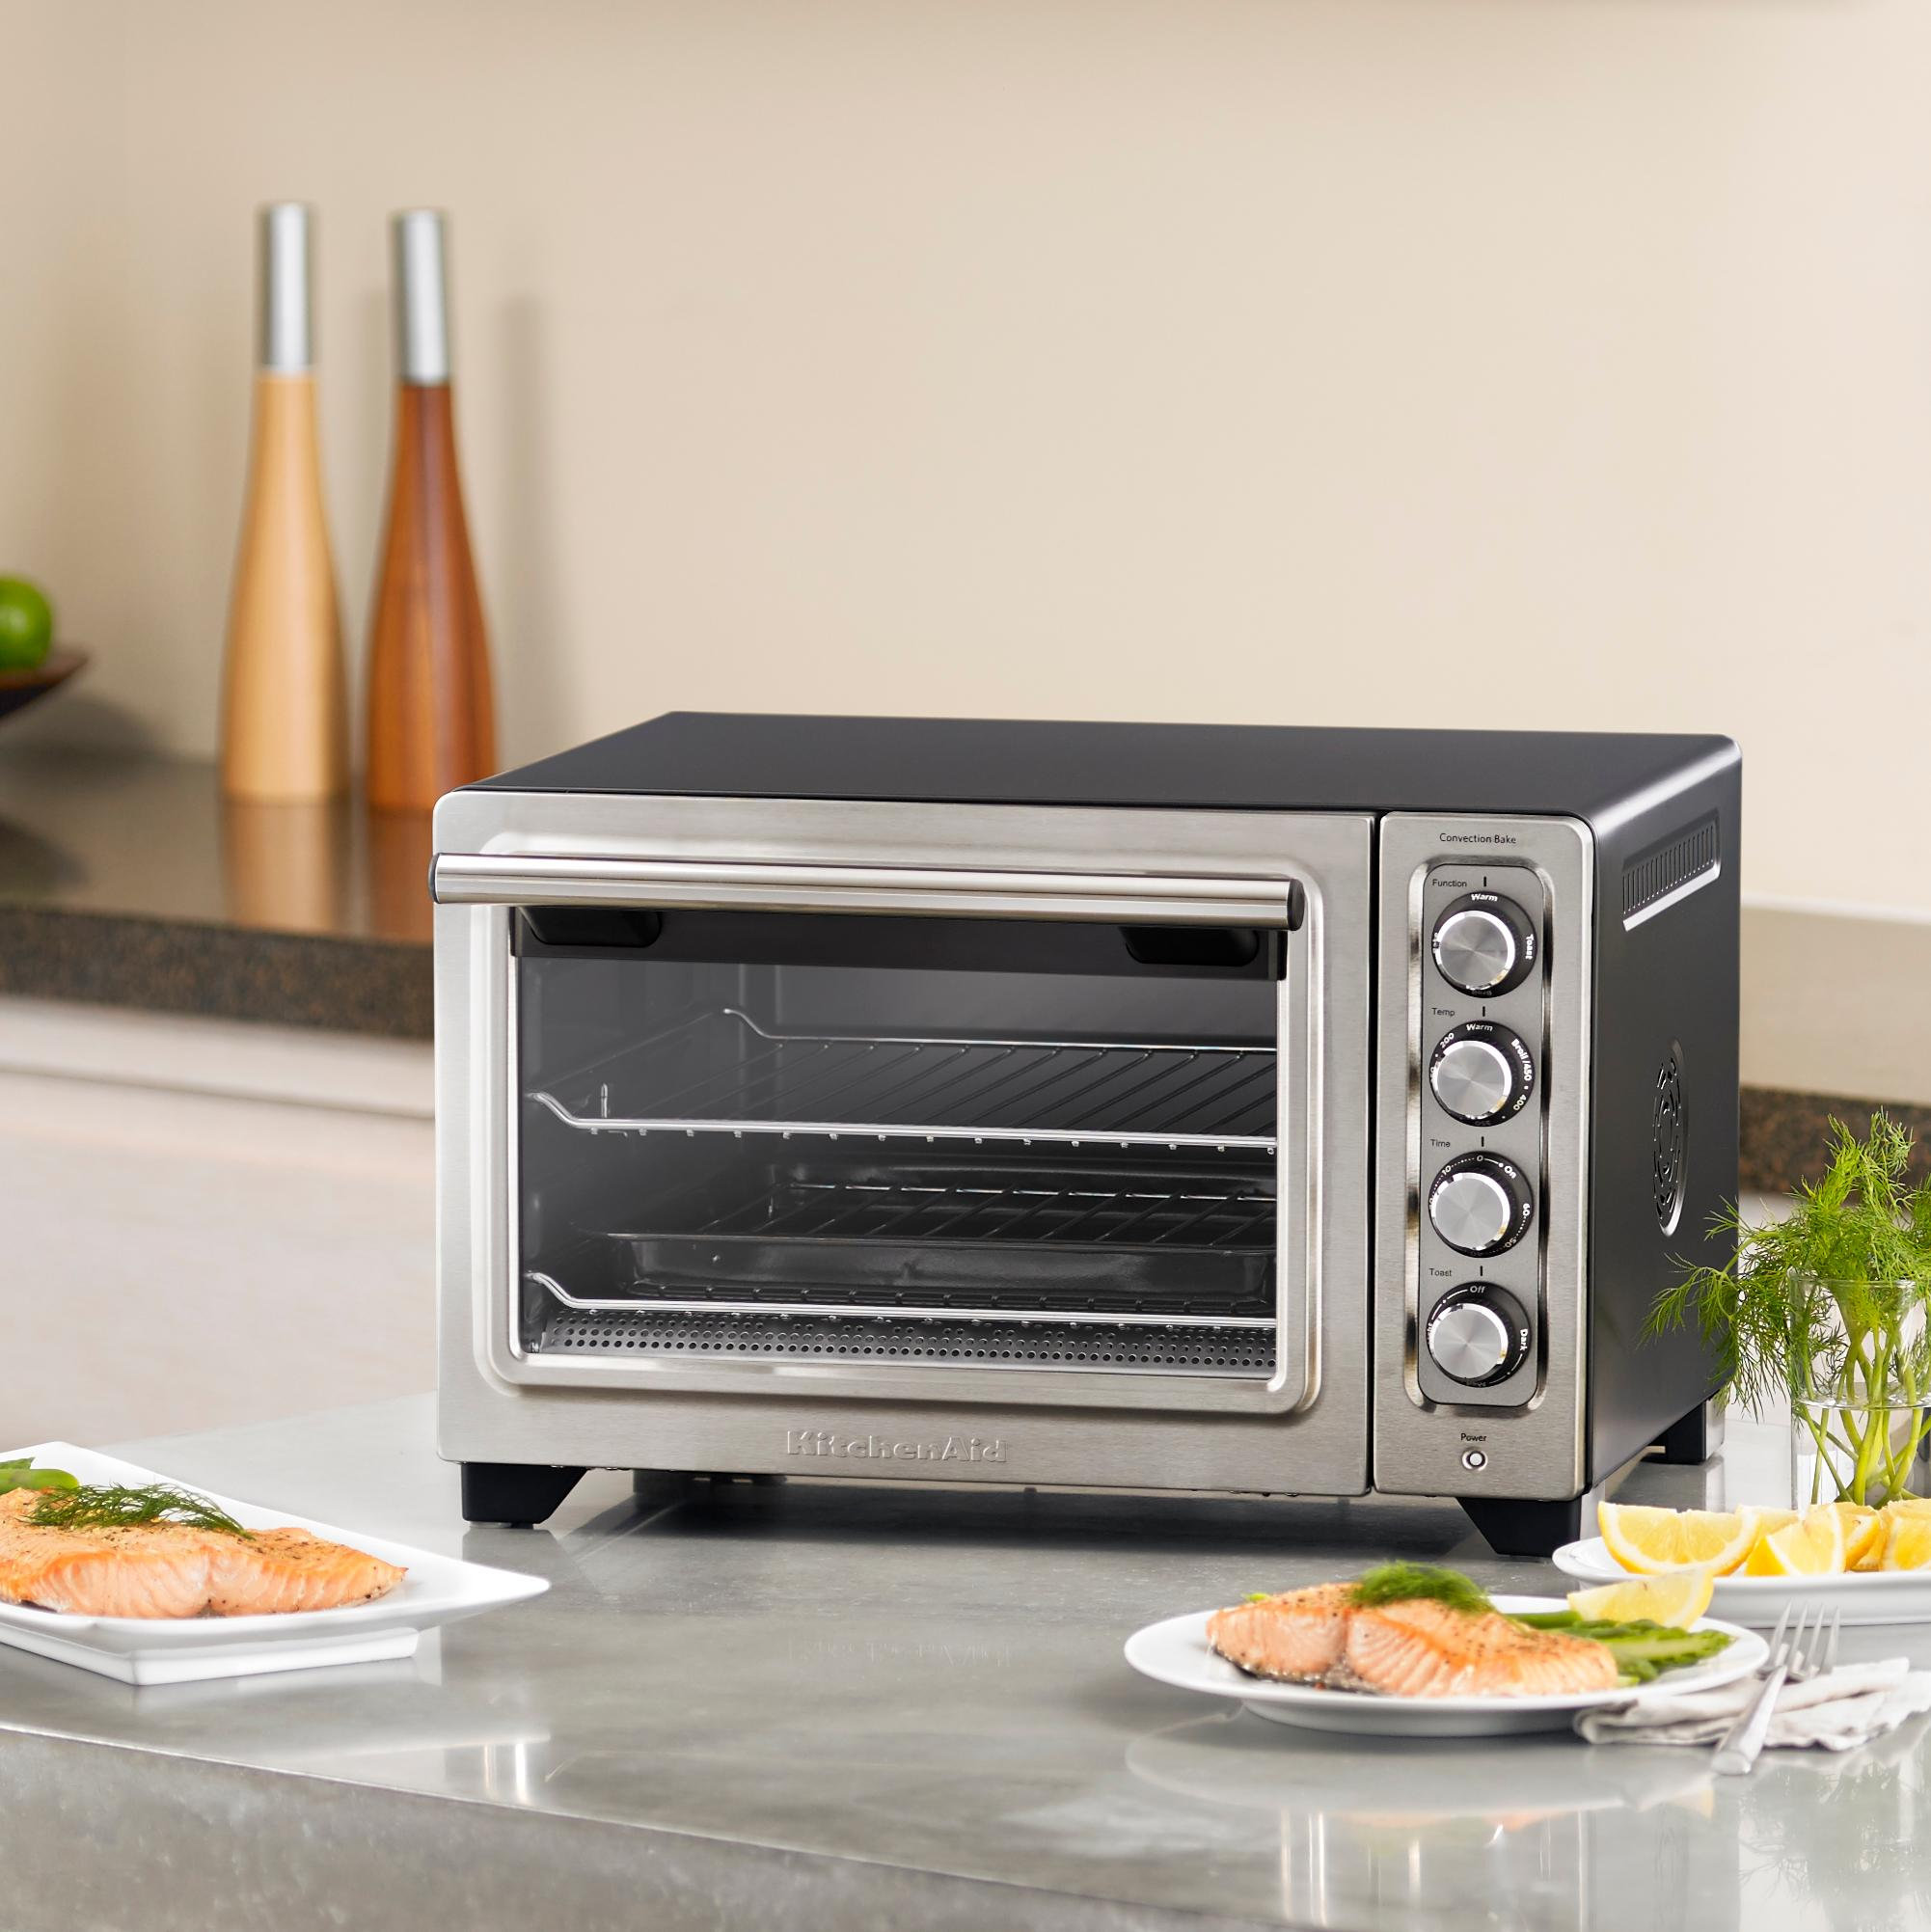 with watt silver ovens iq tibs smart breville convection appliances toaster element product oven